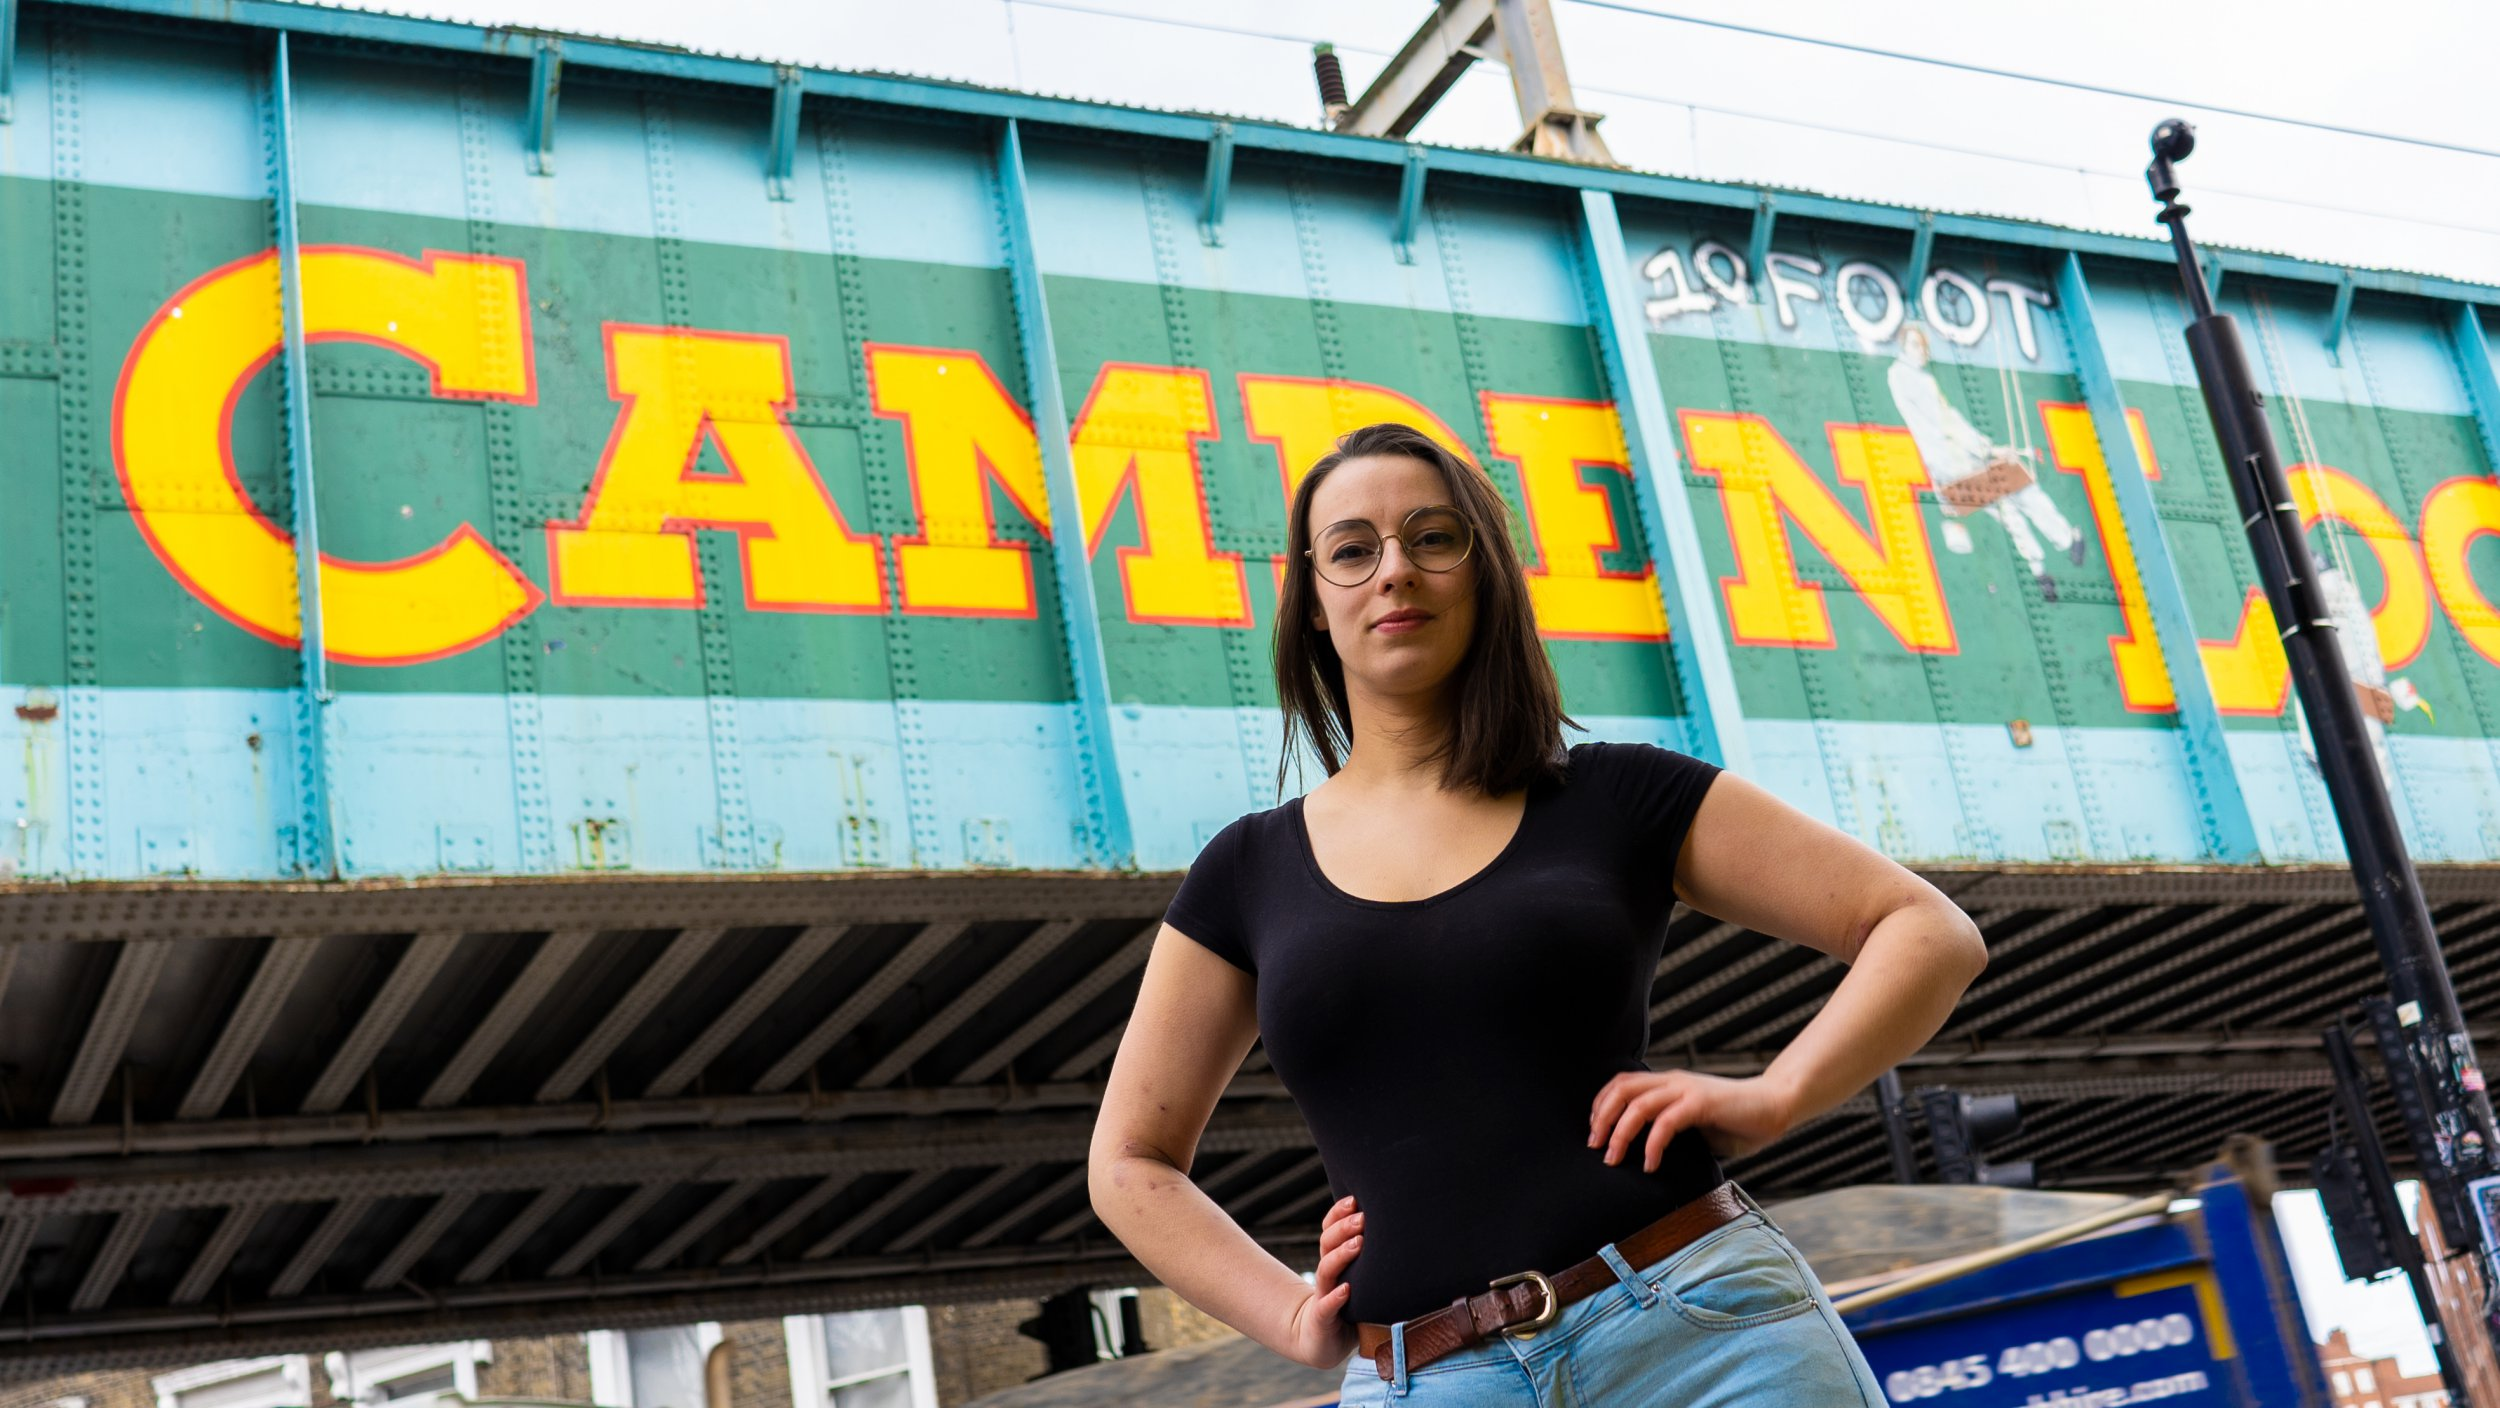 Woman launches crowdfunding campaign to create world's first vagina museum in Camden Market